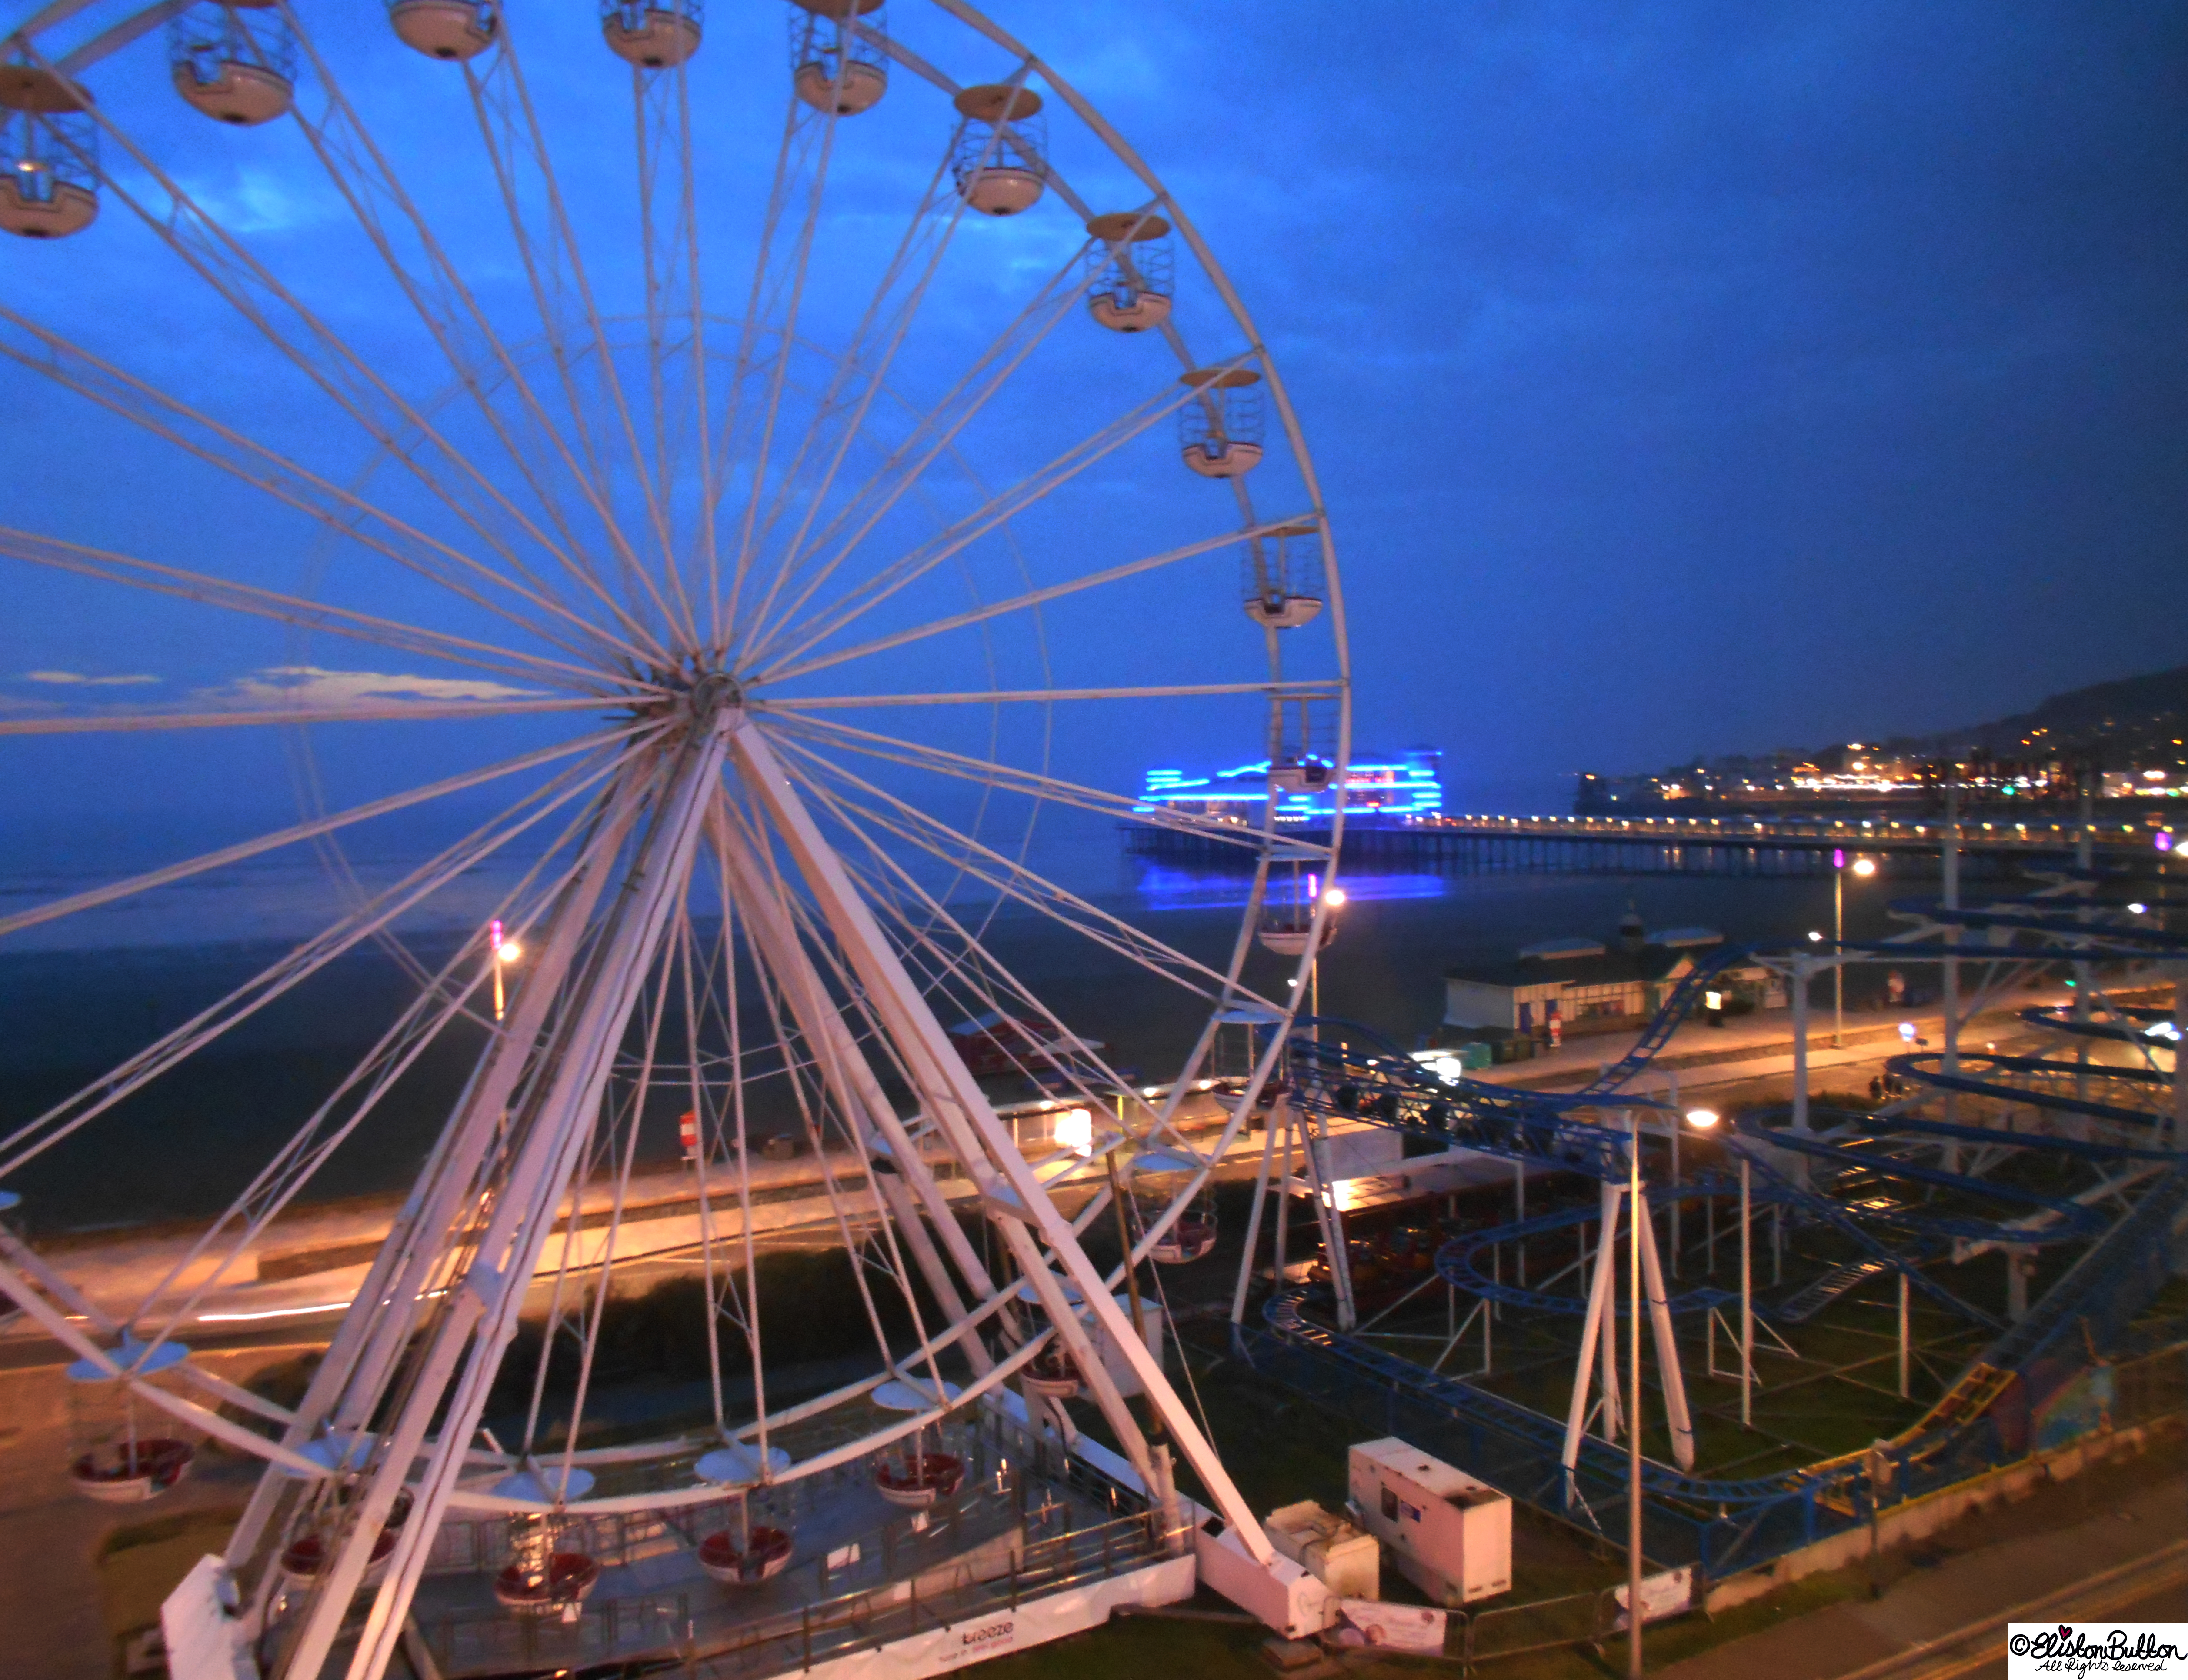 Weston-Super-Mare Ferris Wheel at Night - The Great British Seaside (and an Eliston Button Autumn Sale) at www.elistonbutton.com - Eliston Button - That Crafty Kid – Art, Design, Craft & Adventure.